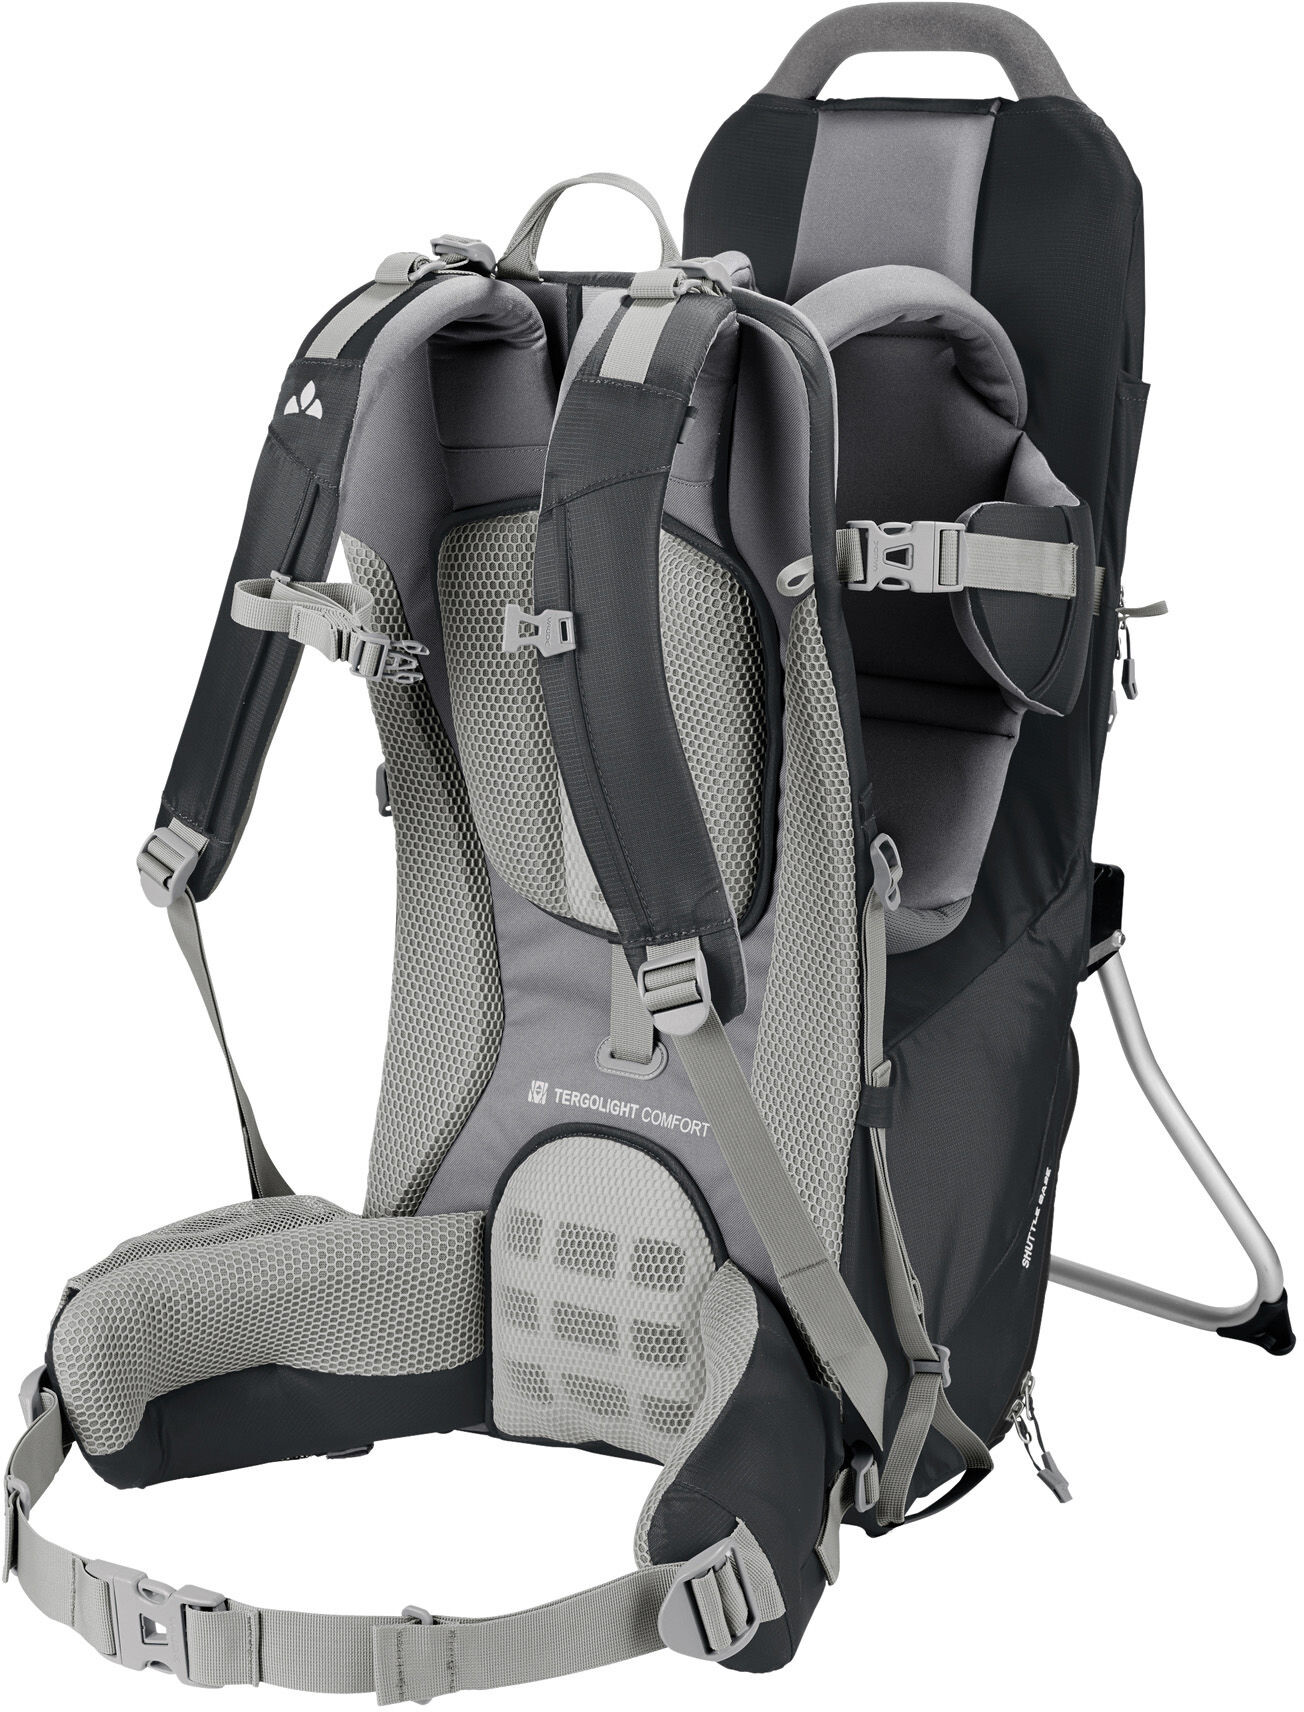 VAUDE Shuttle Base Child Carrier black - addnature.com d05c14e74fa6c